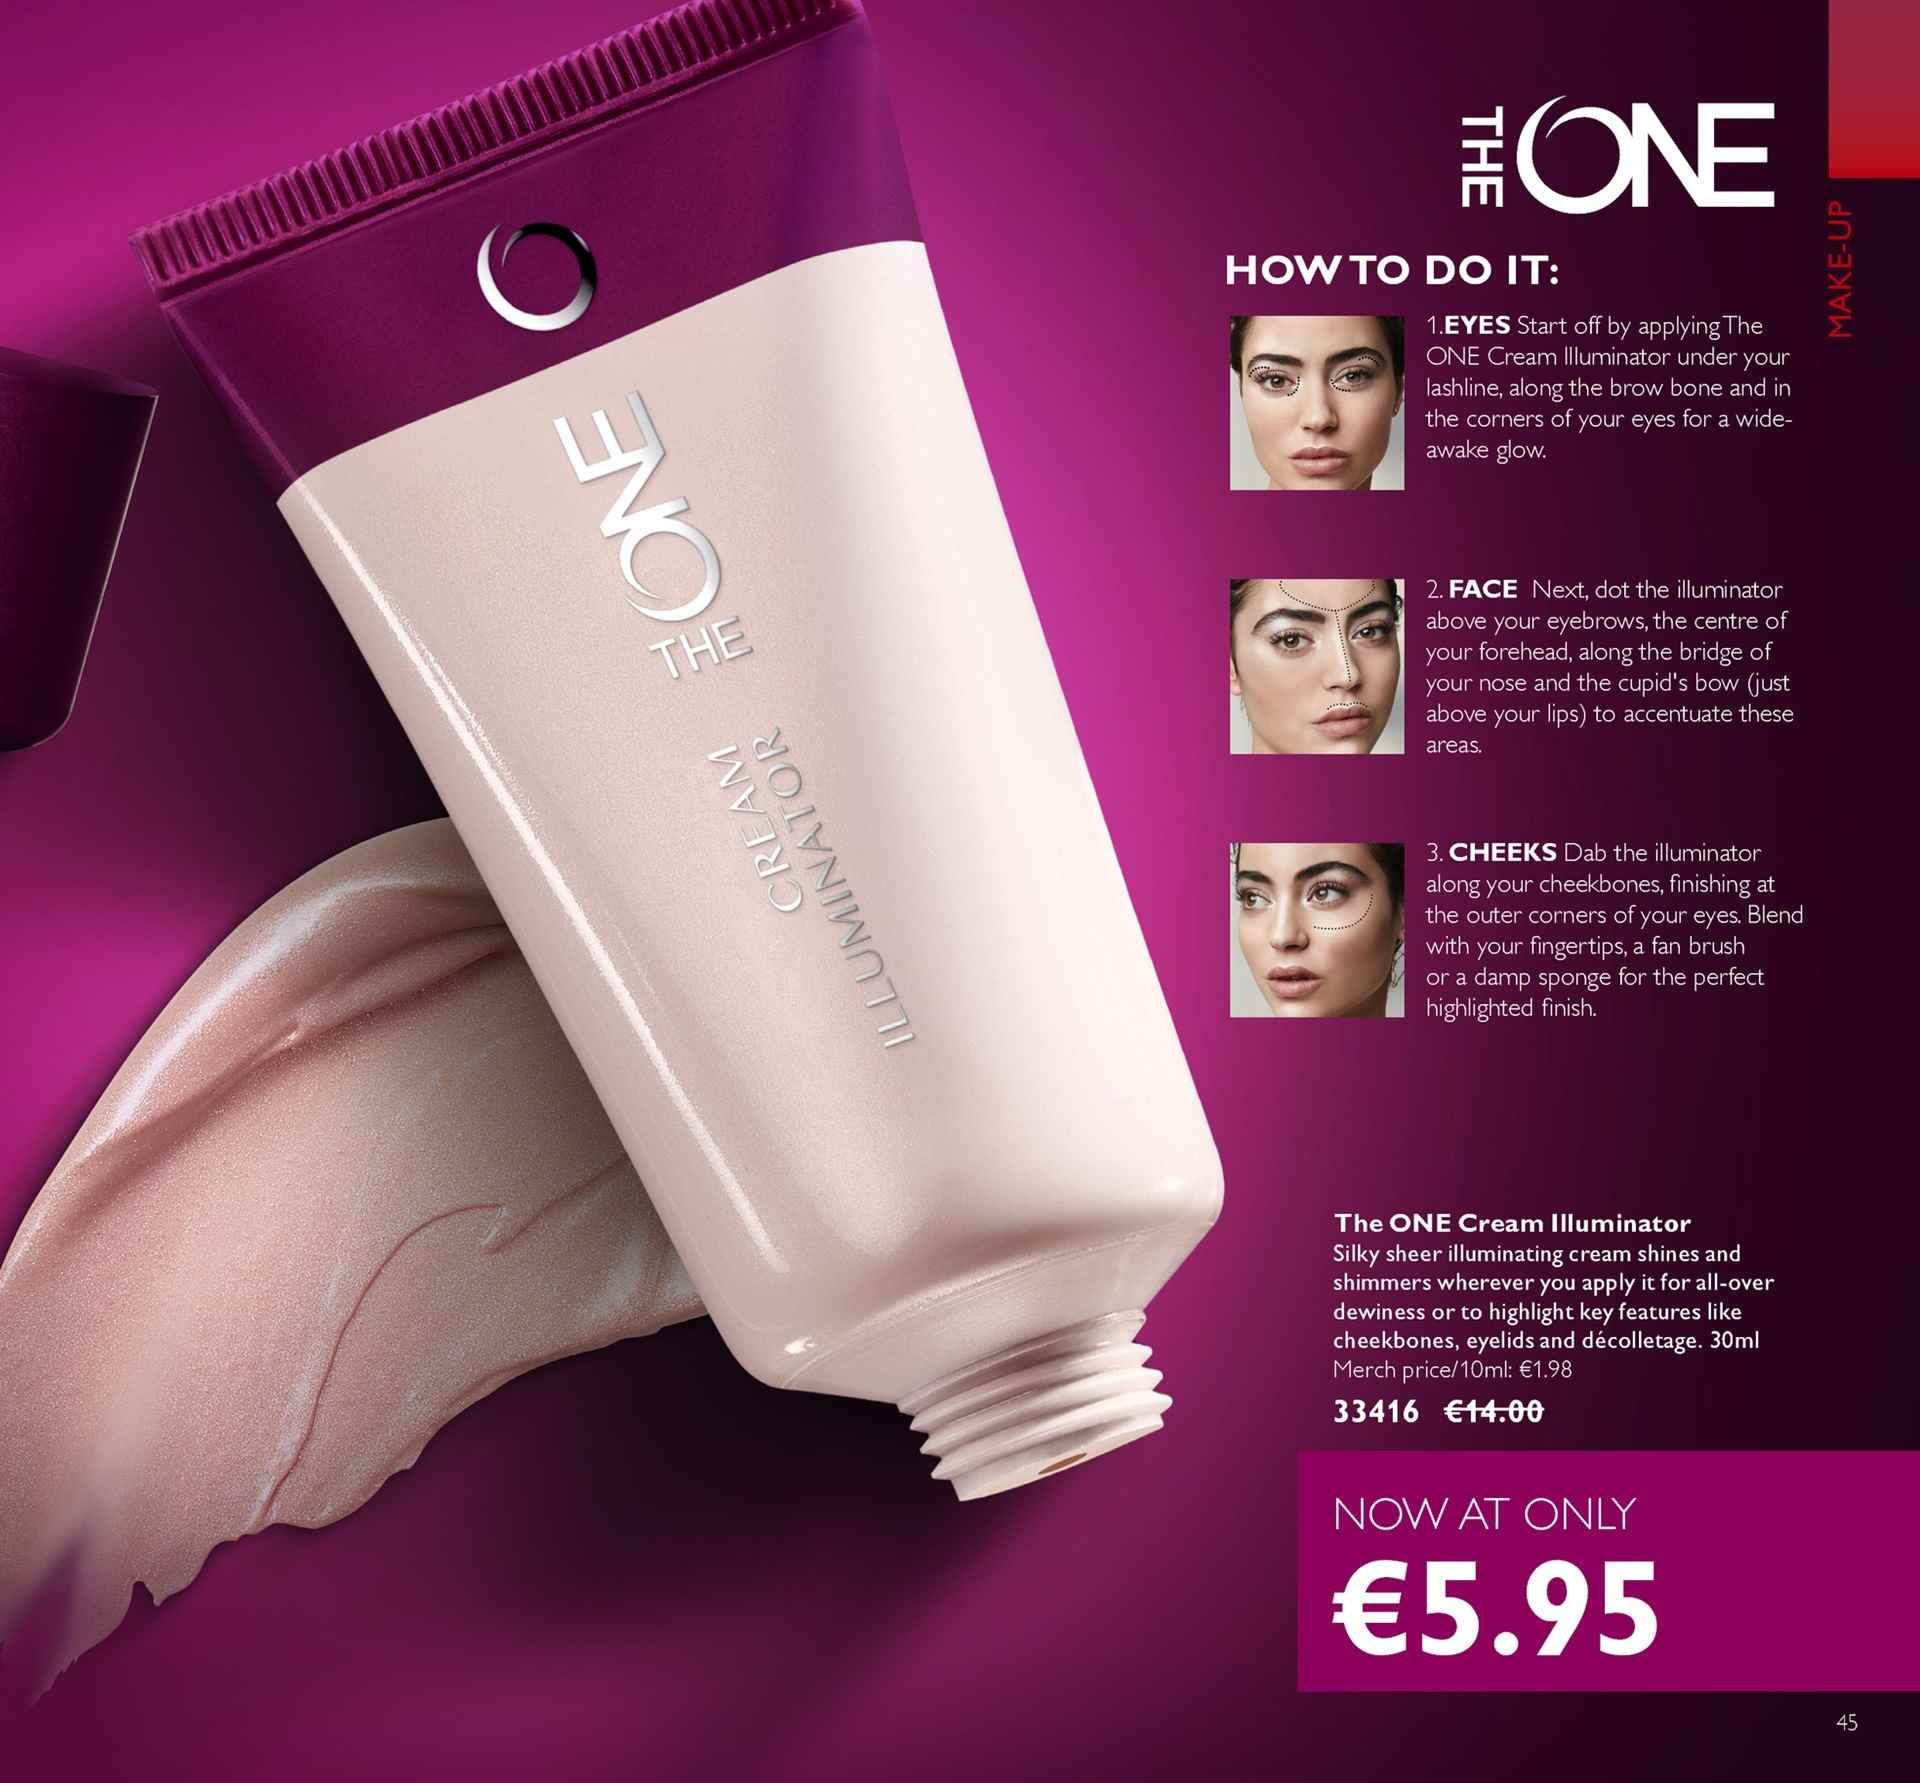 Oriflame offer  - 4.5.2018 - 24.5.2018 - Sales products - sheer. Page 45.